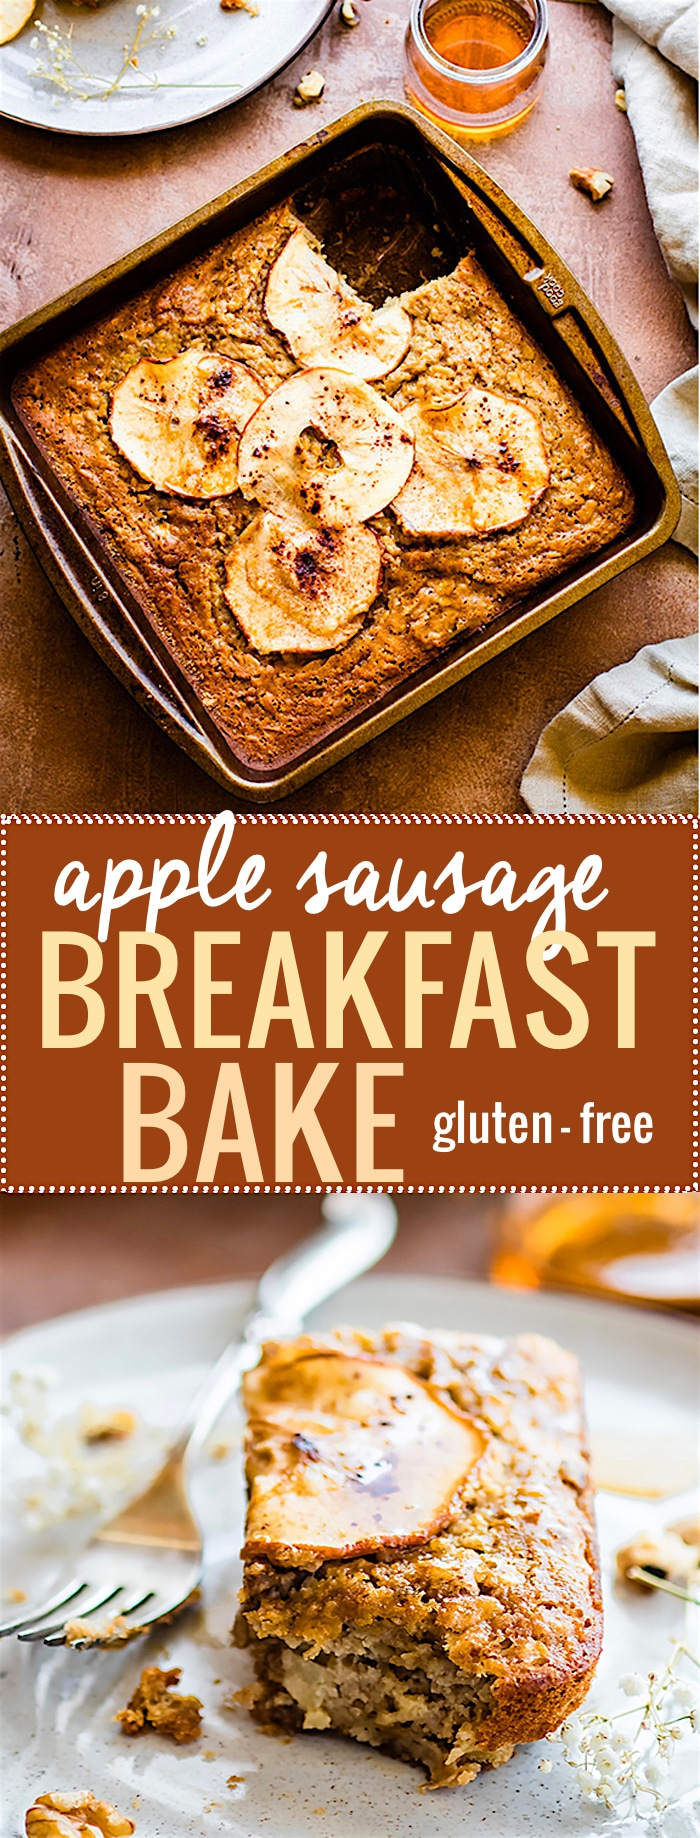 Apple Sausage is KEY for making this sweet and savory Healthy breakfast bake! Gluten Free chicken Apple sausage combined maple syrup, gluten free pancake mix, eggs, and more. It's a wholesome breakfast bake that's a meal in itself. Great for breakfast on the go, brunch, and more. Easy, protein packed, and DELICIOUS! @COTTERCRUNCH #alfrescogourmet